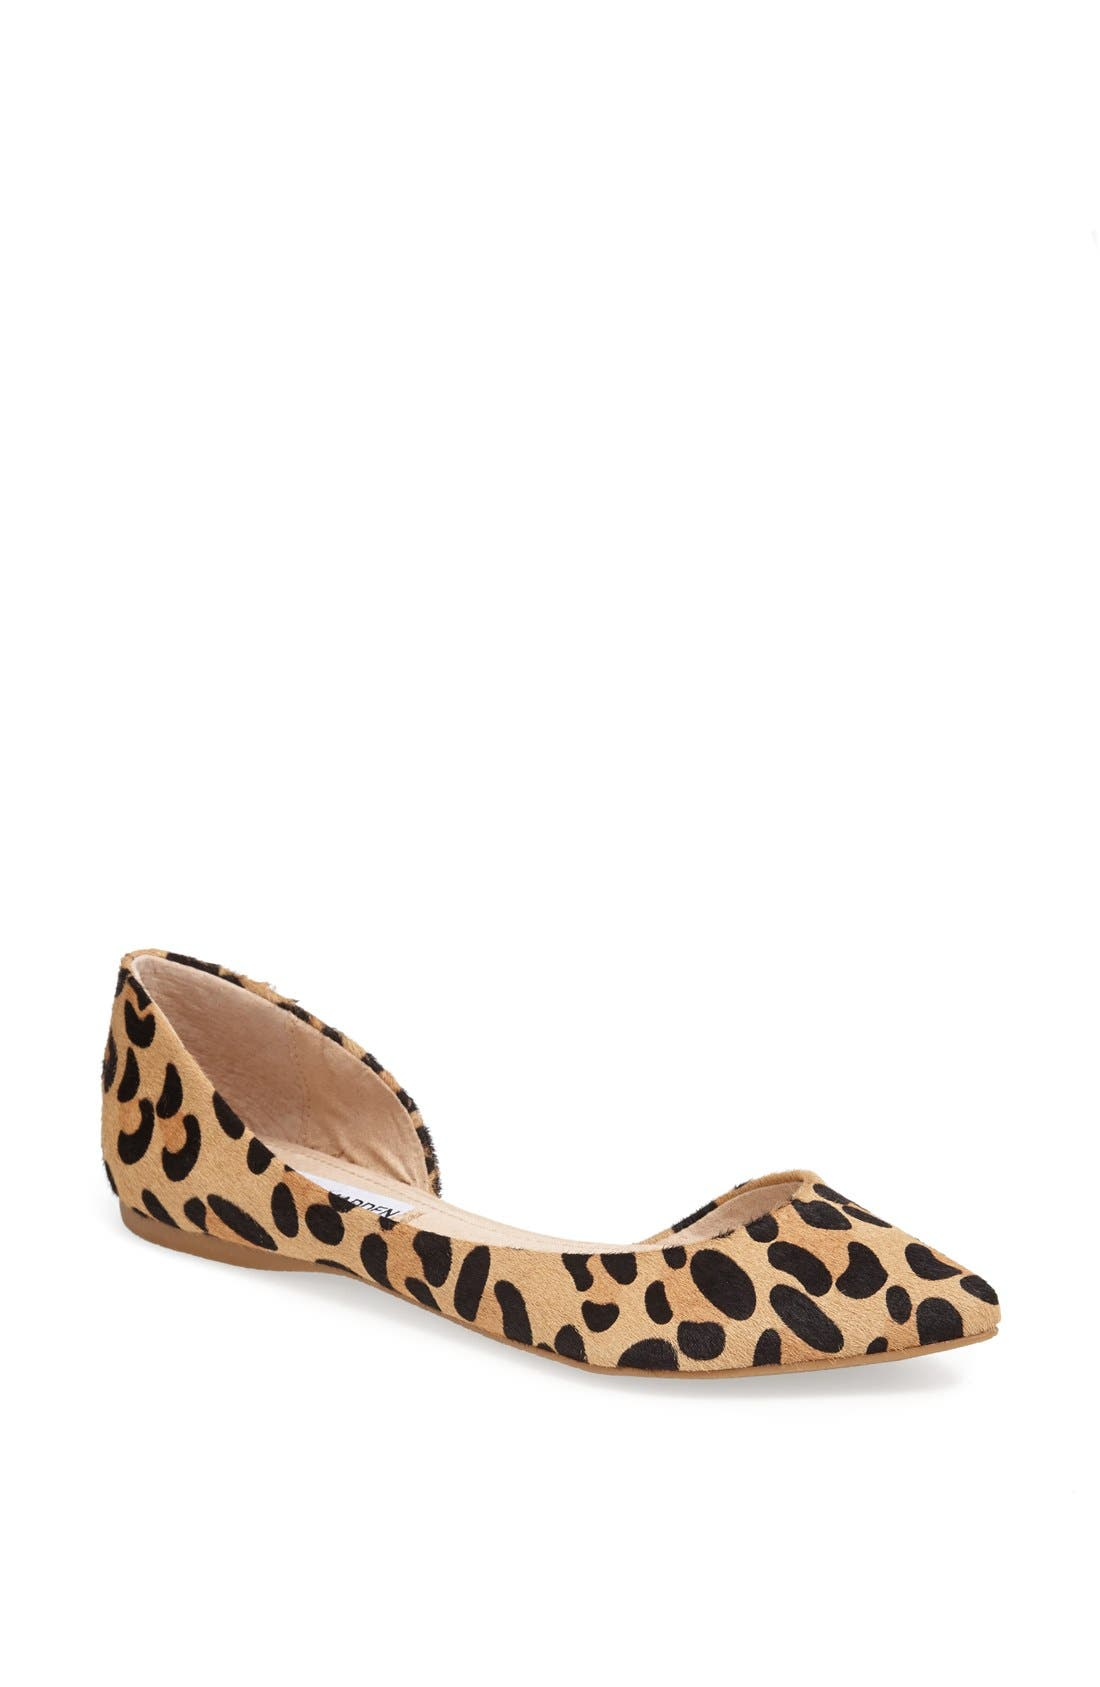 Alternate Image 1 Selected - Steve Madden 'Elusion' Leopard Print Calf Hair Half d'Orsay Flat